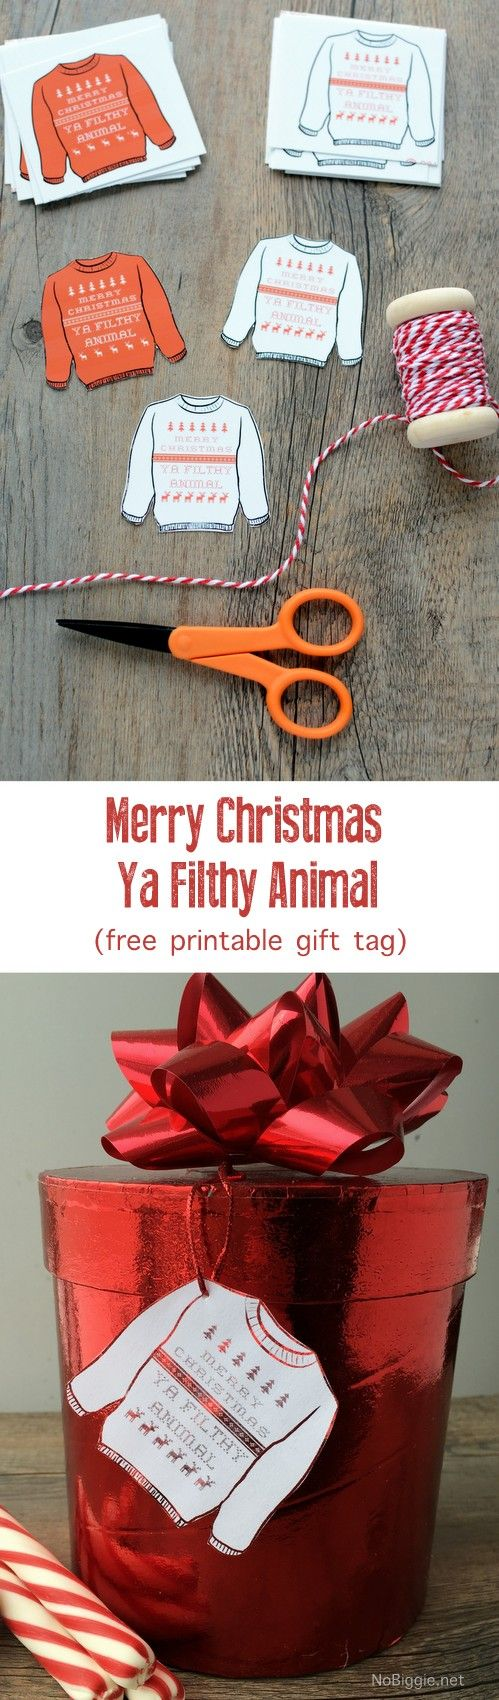 Merry Christmas Ya Filthy Animal (free printable gift tags) | NoBiggie.net Get in the holiday spirit with HOME ALONE, download your copy today! #FoxChristmas #ad